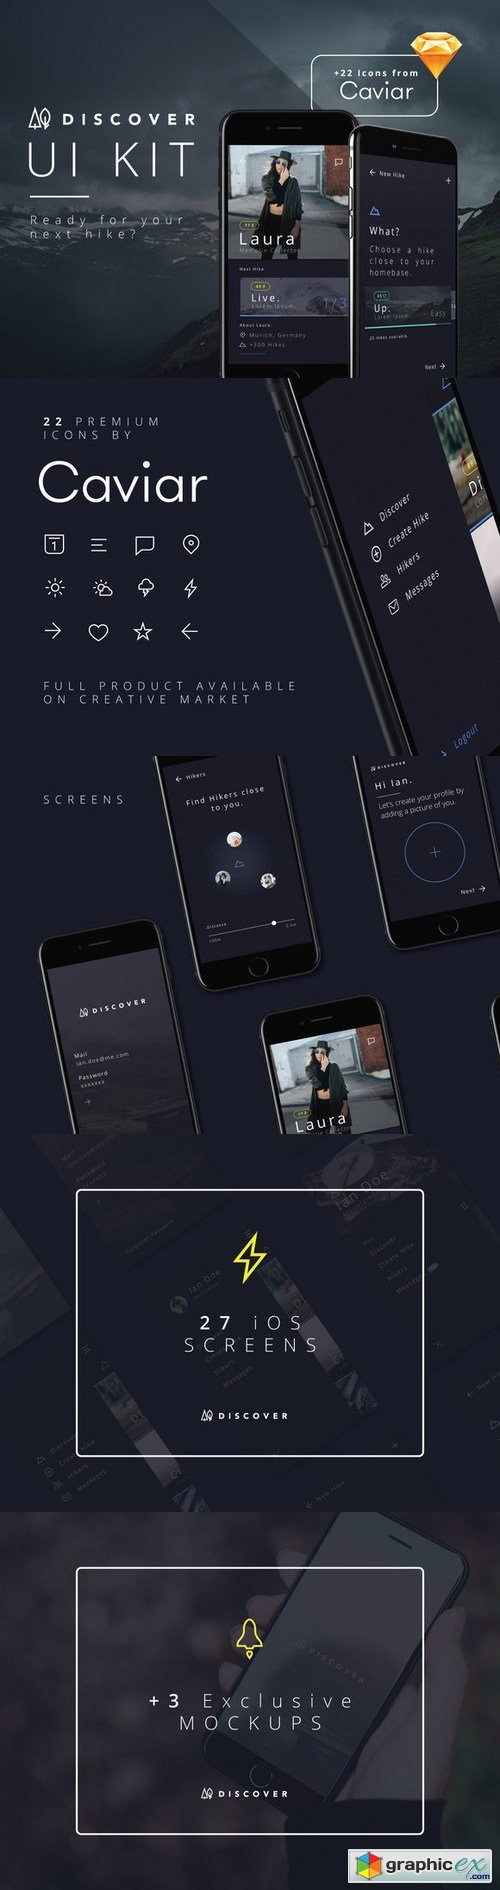 Discover UI Kit iOS